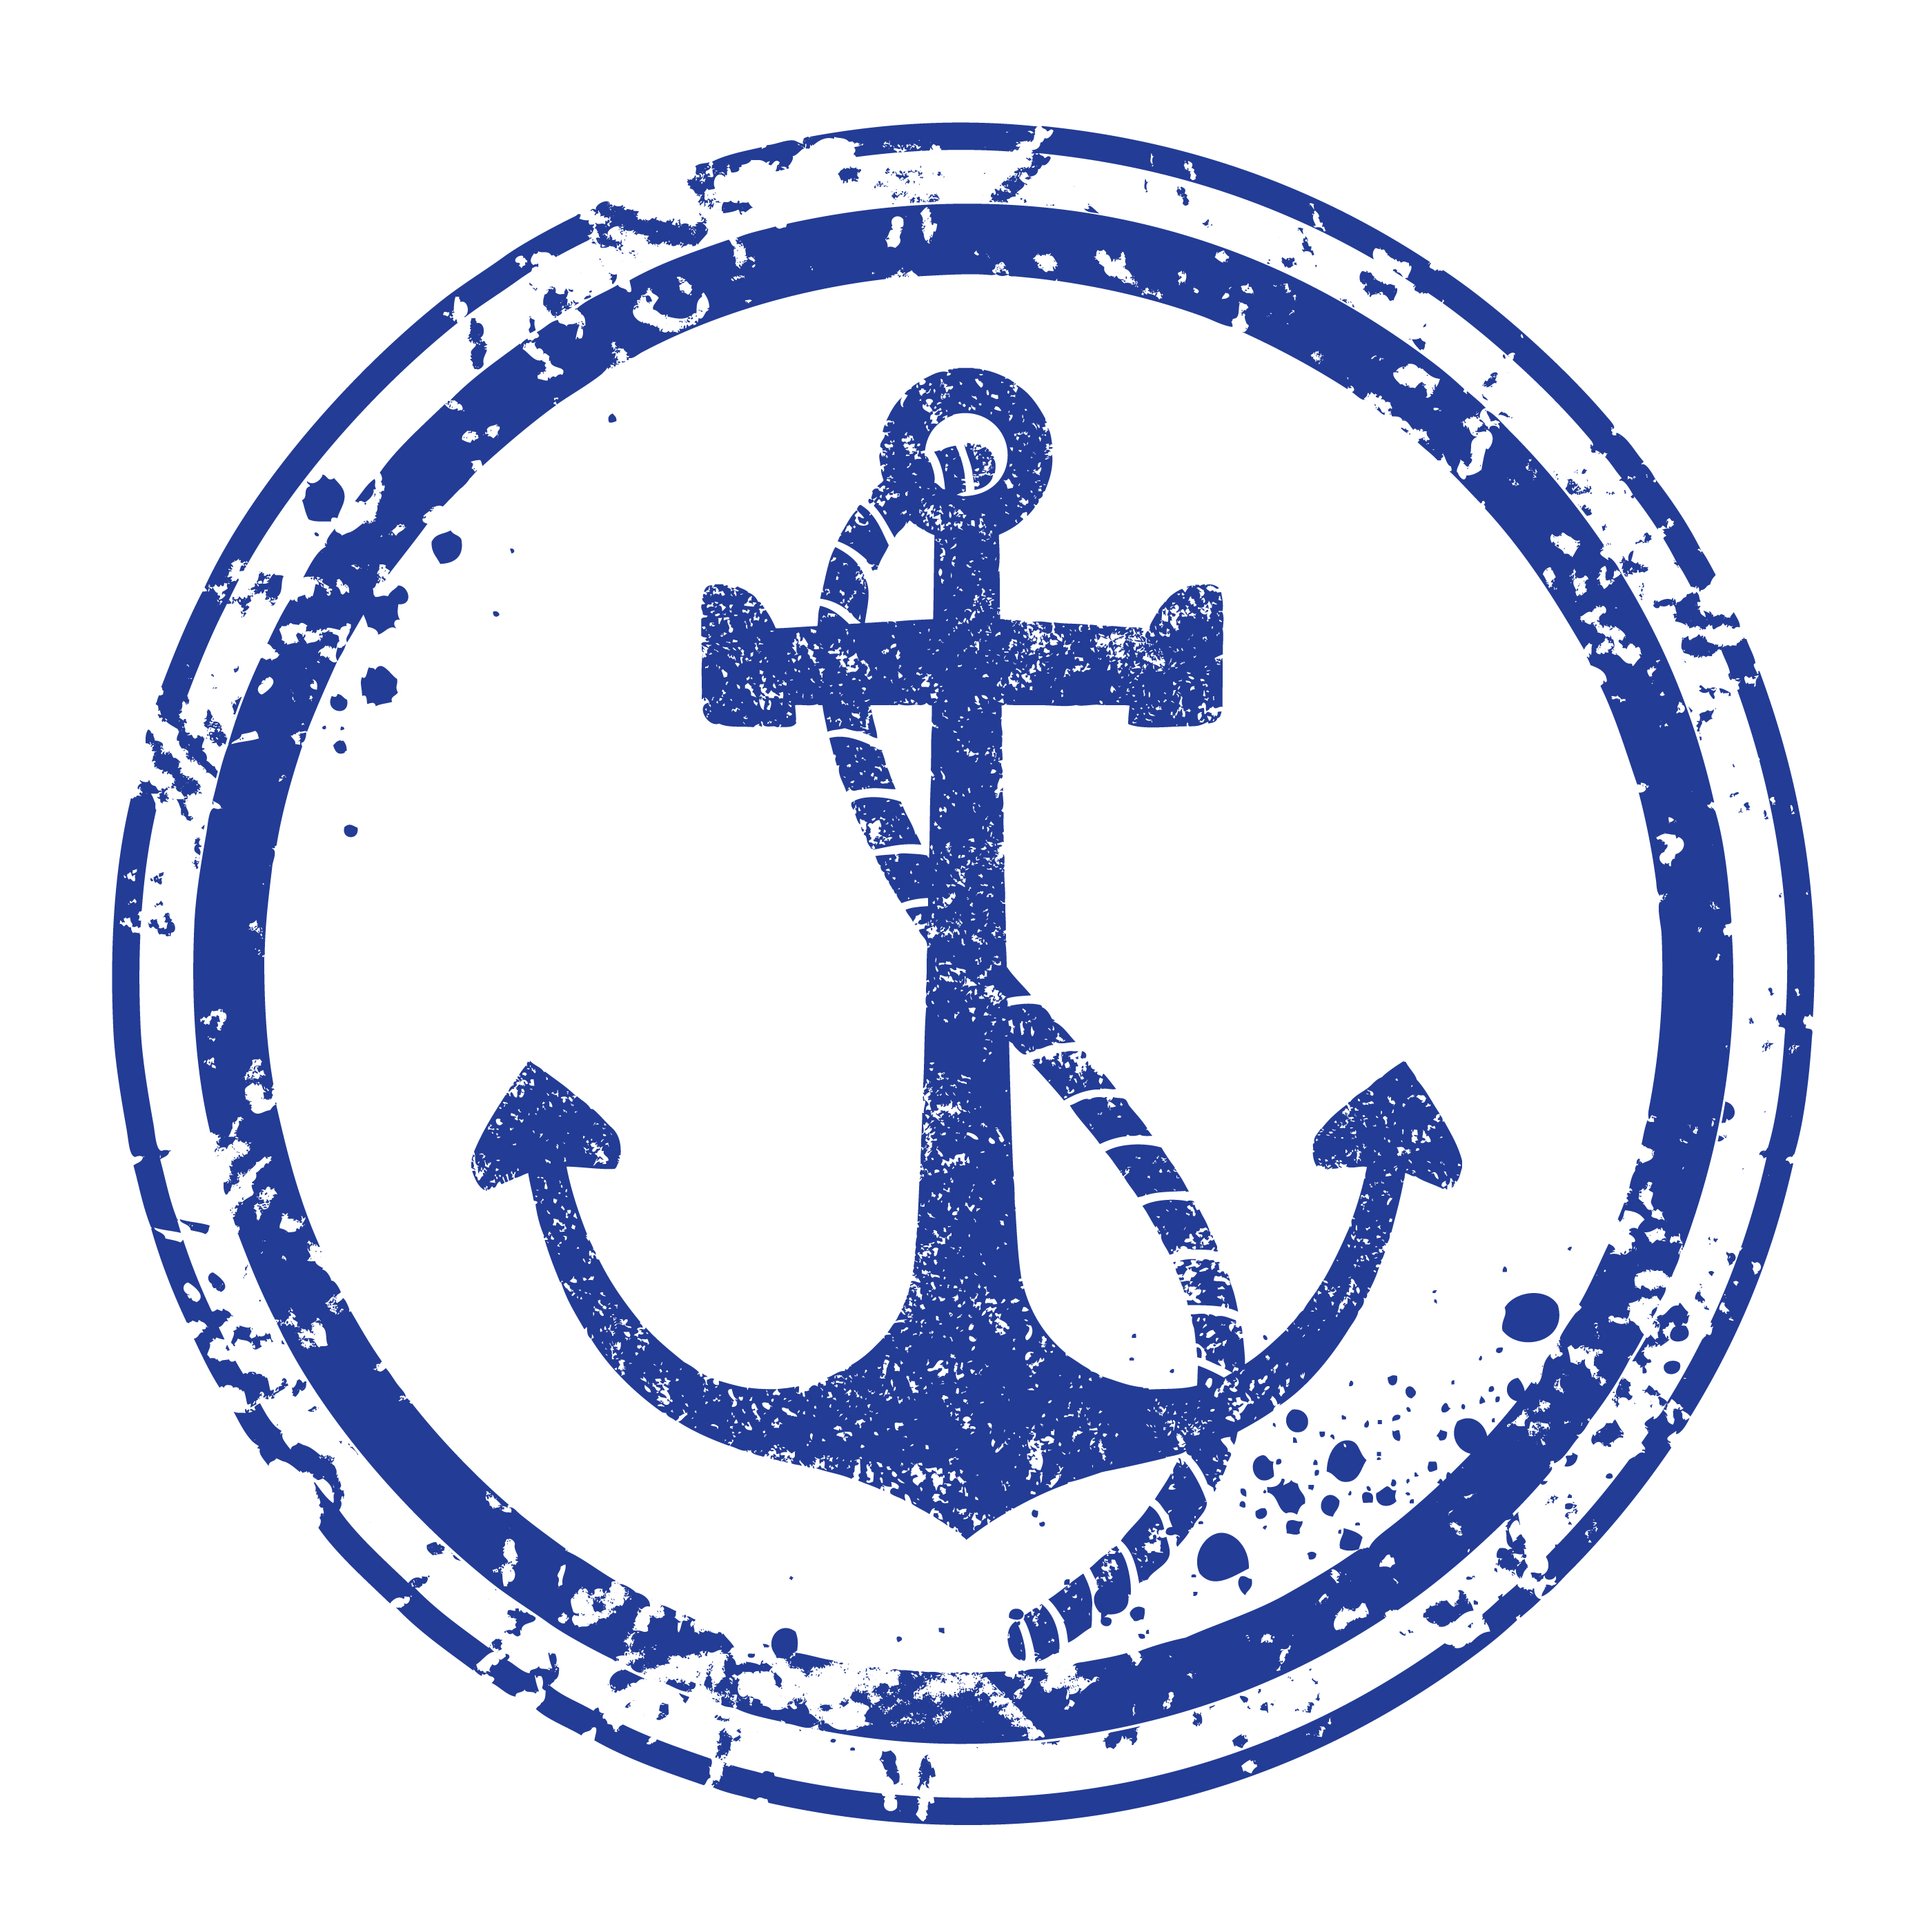 Daily Encouragement An Anchor In The Sea Of Life